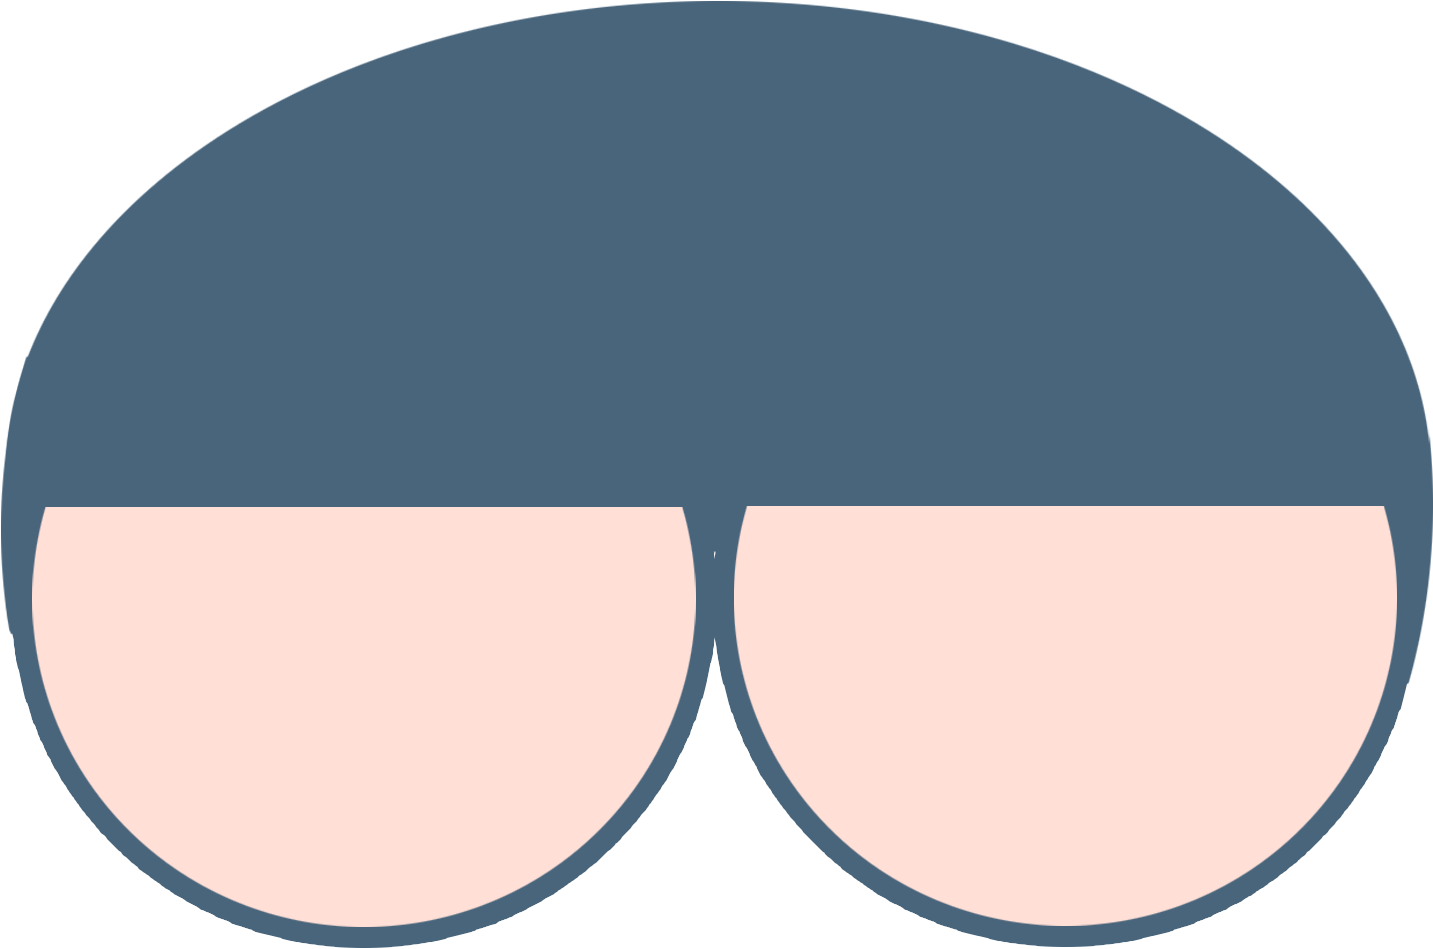 Boobs clipart transparent. Gaming circle full size